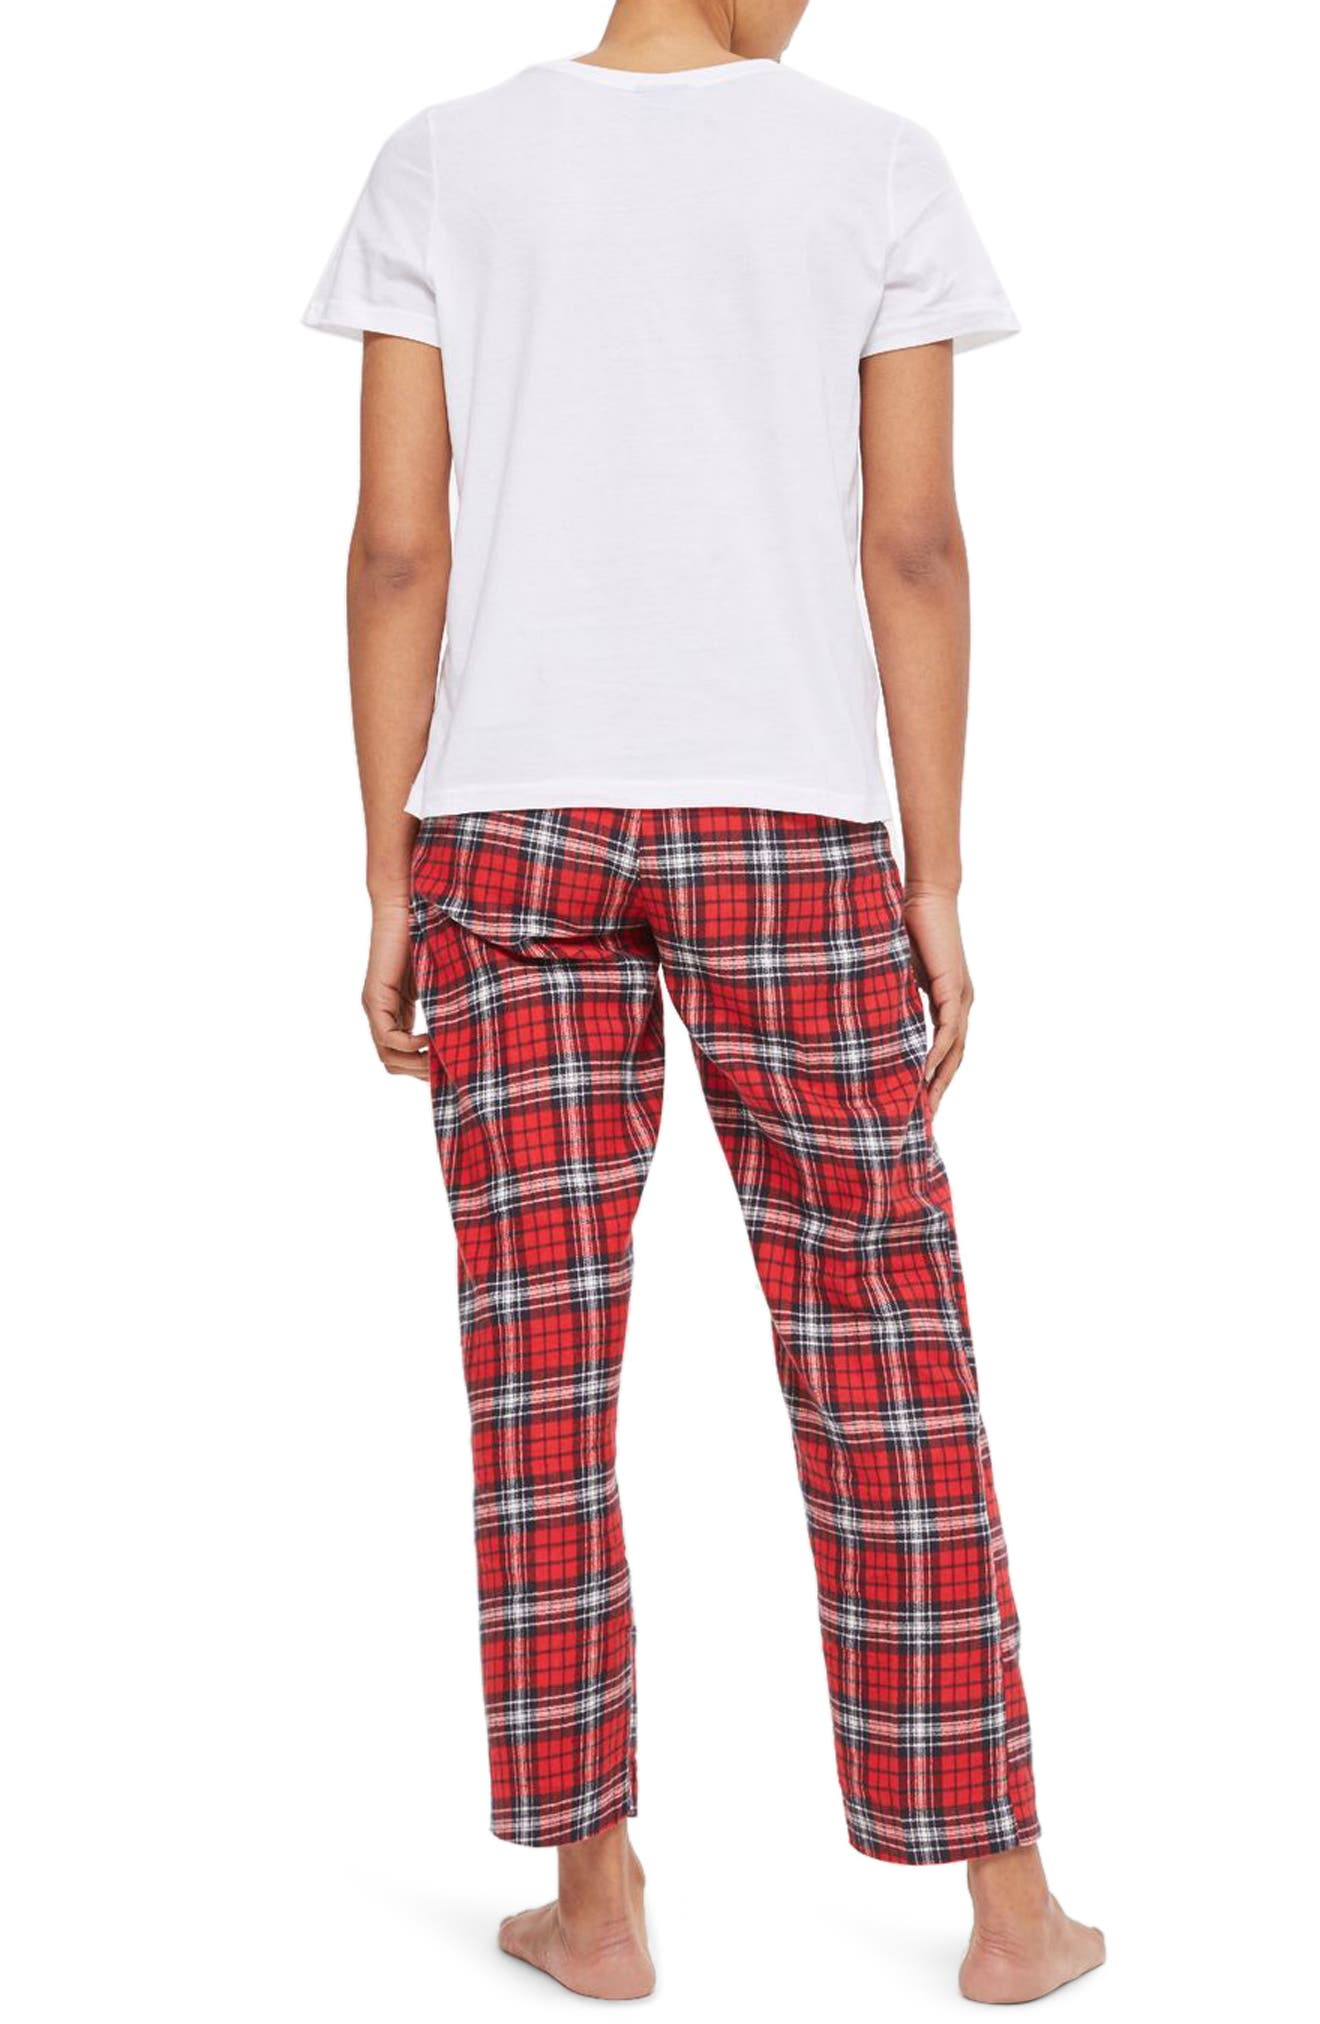 Friends Long Checkered Pajamas,                             Alternate thumbnail 2, color,